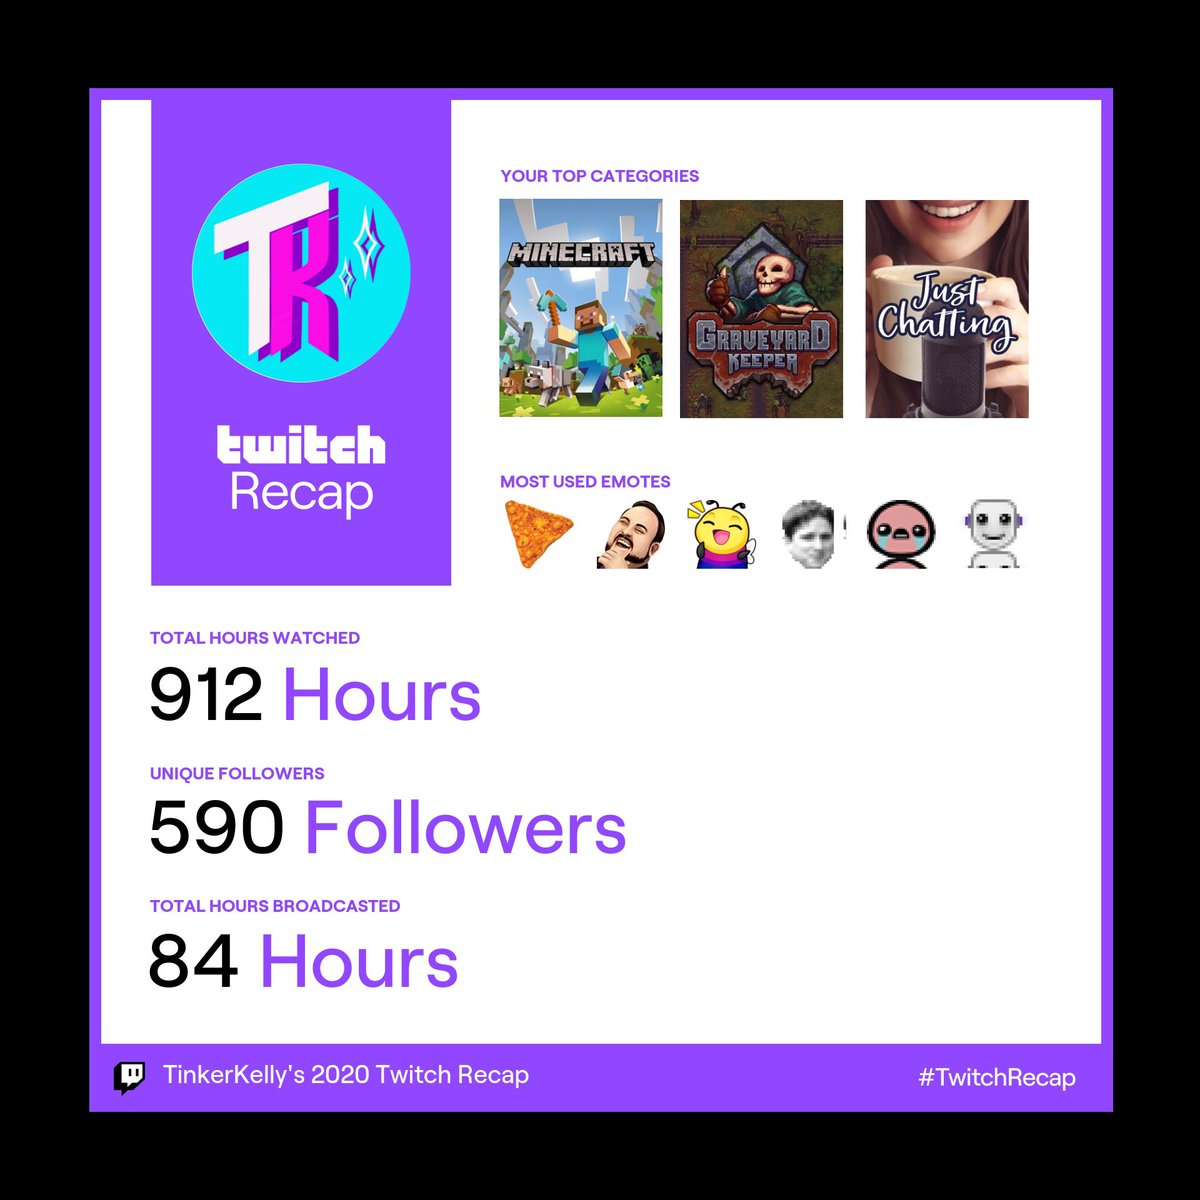 It's been such a good year y'all 💕 #TwitchRecap